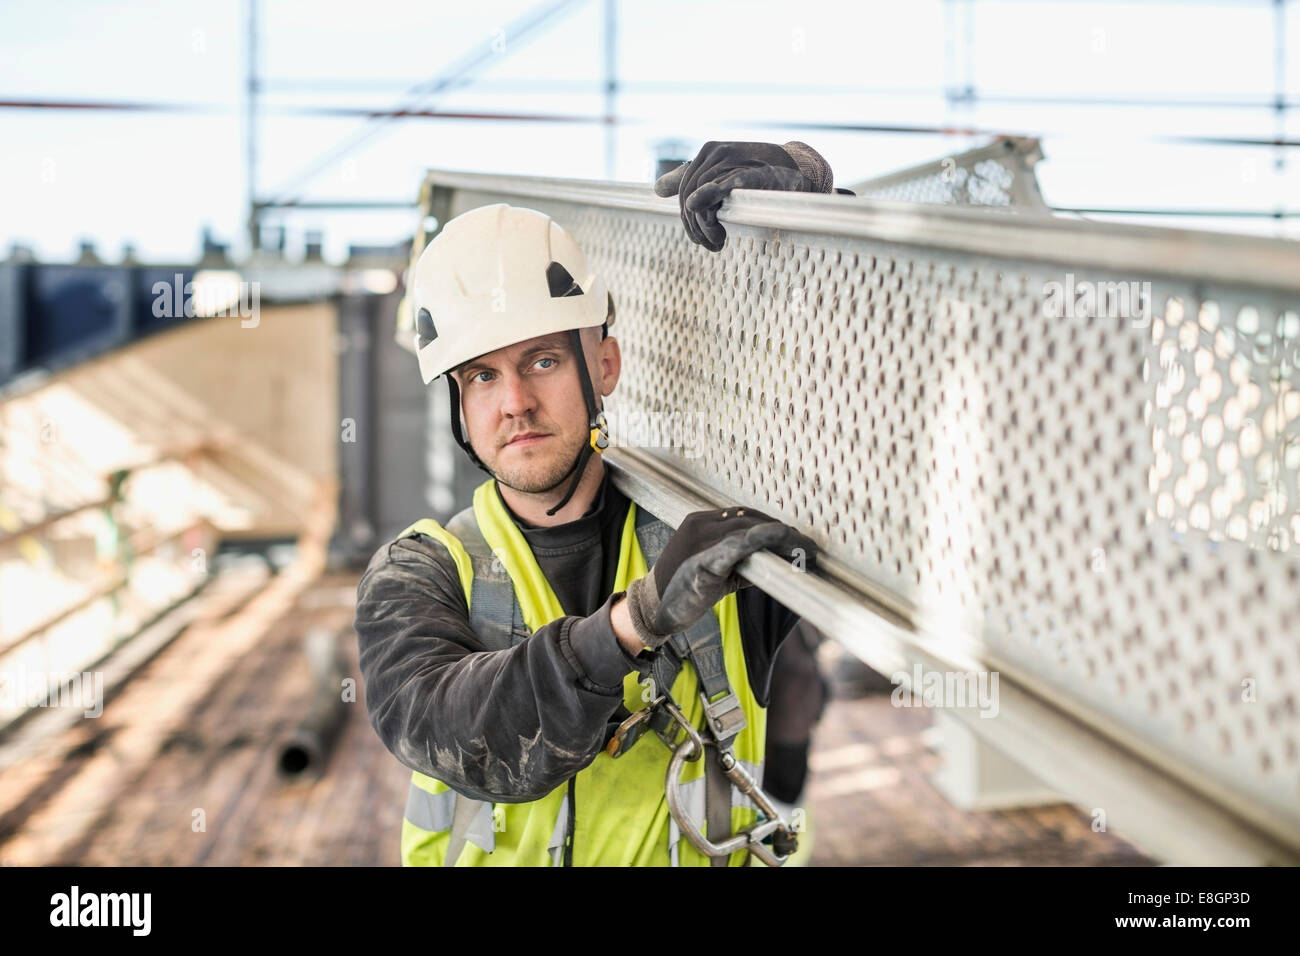 Construction worker looking away while carrying metal plank at site - Stock Image